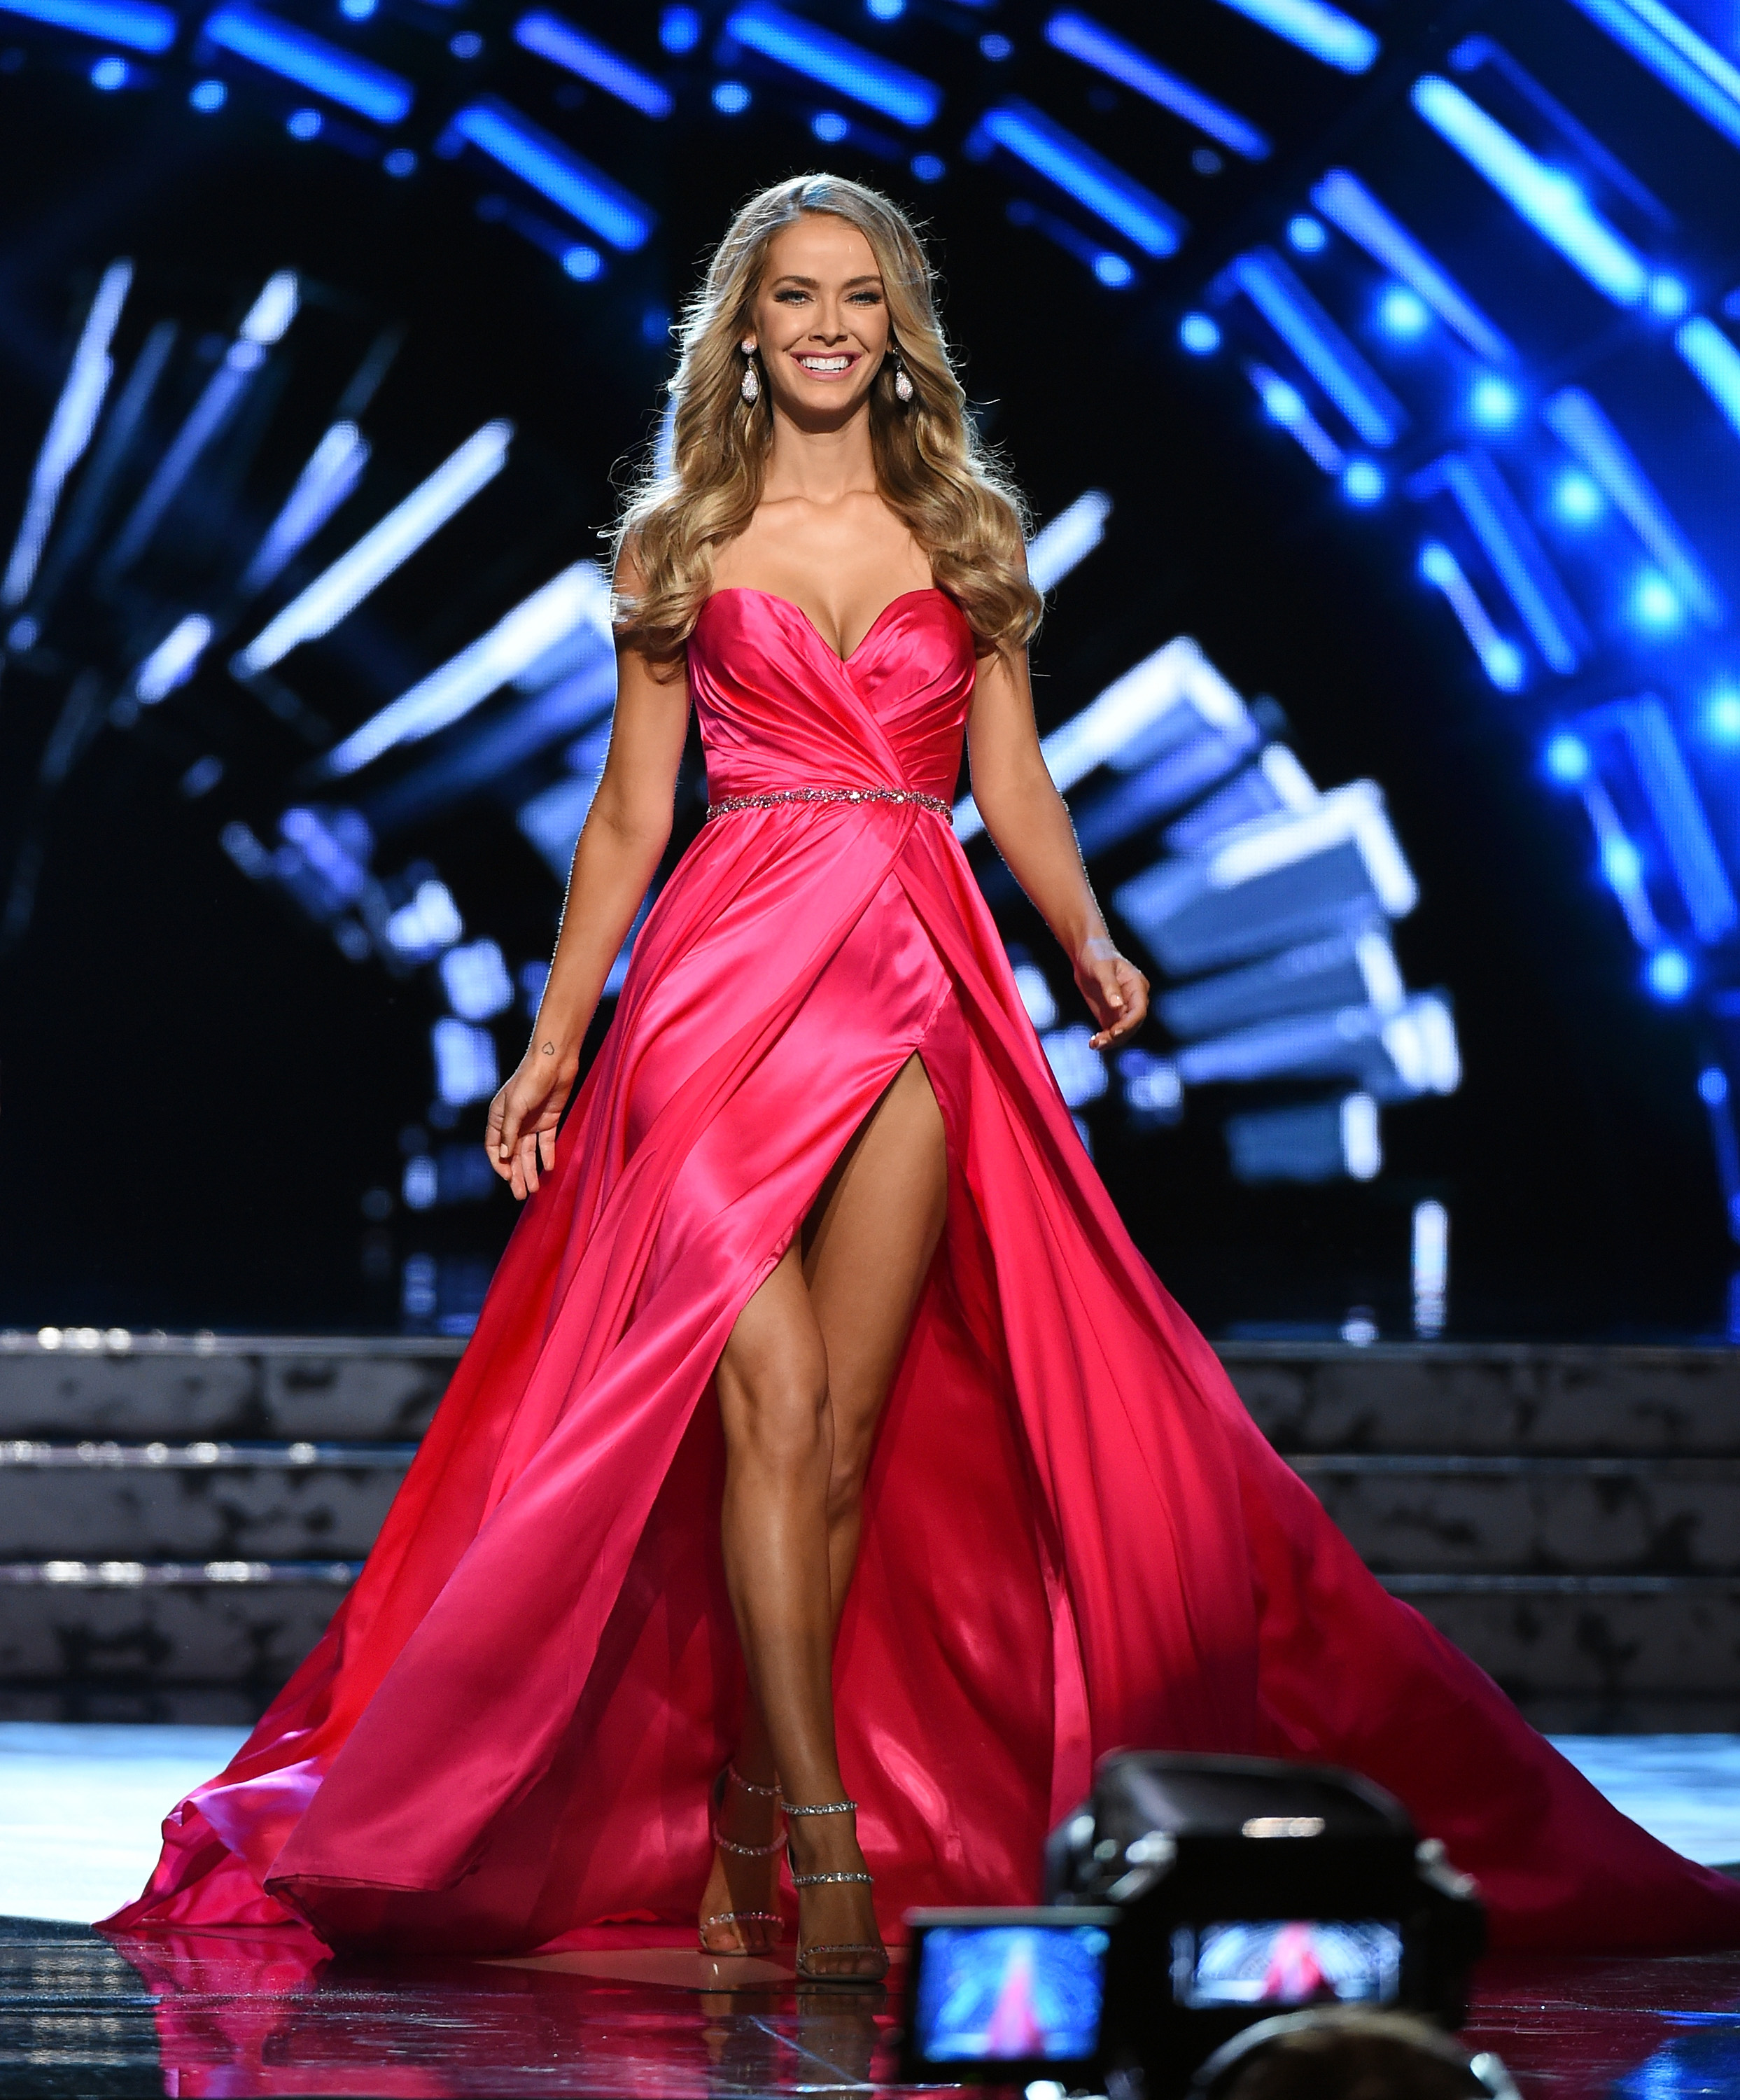 Miss Usa Vs Miss America A Side By Side Comparison Of The